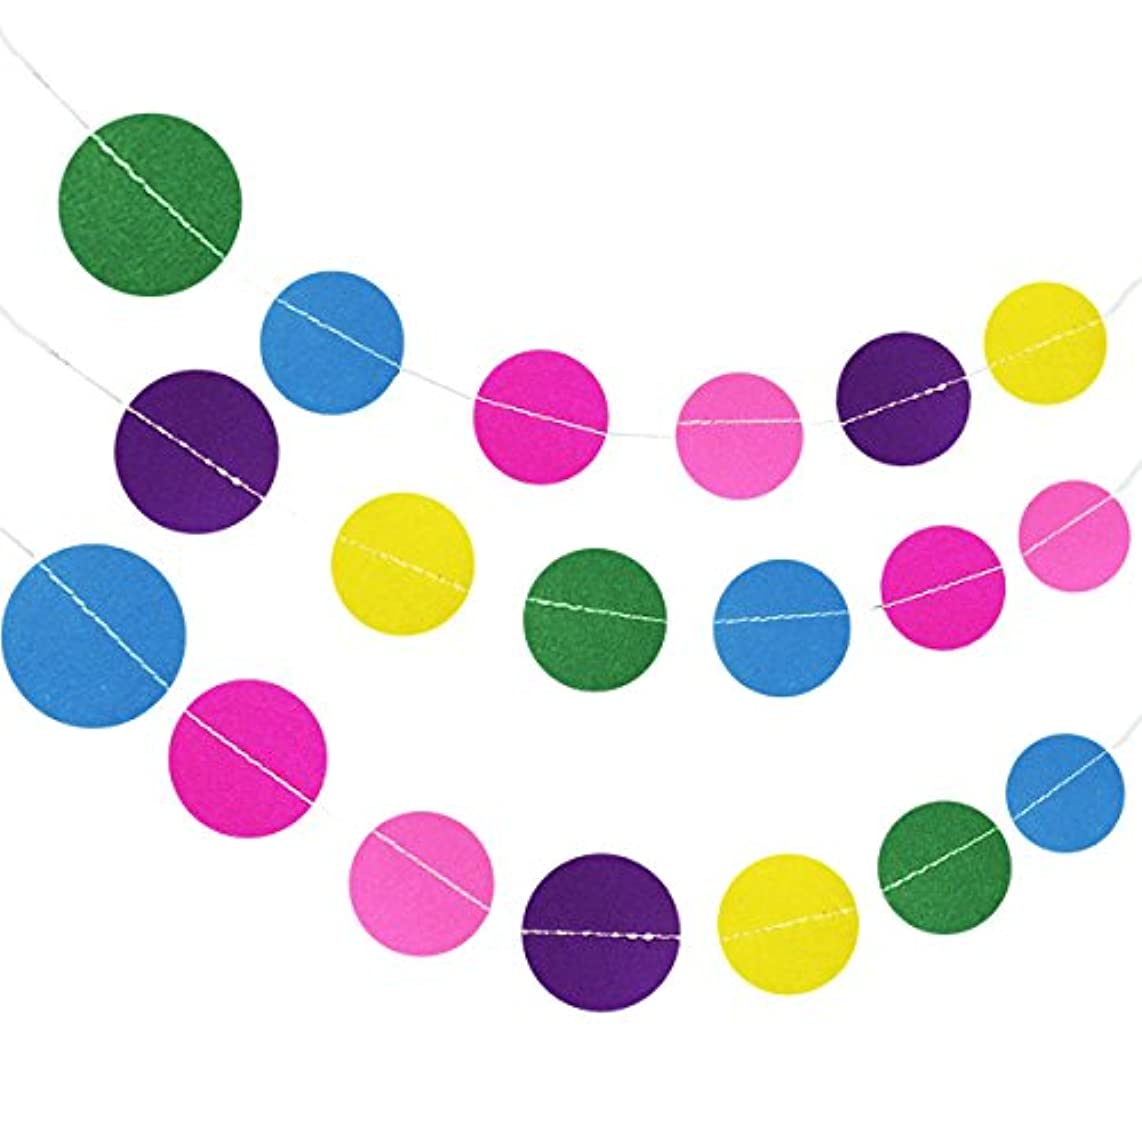 Wrapables 26ft Total Paper Circle Dot Garland Weddings, Birthday Parties, Baby Showers, and Nursery Decor (Set of 2), Rainbow